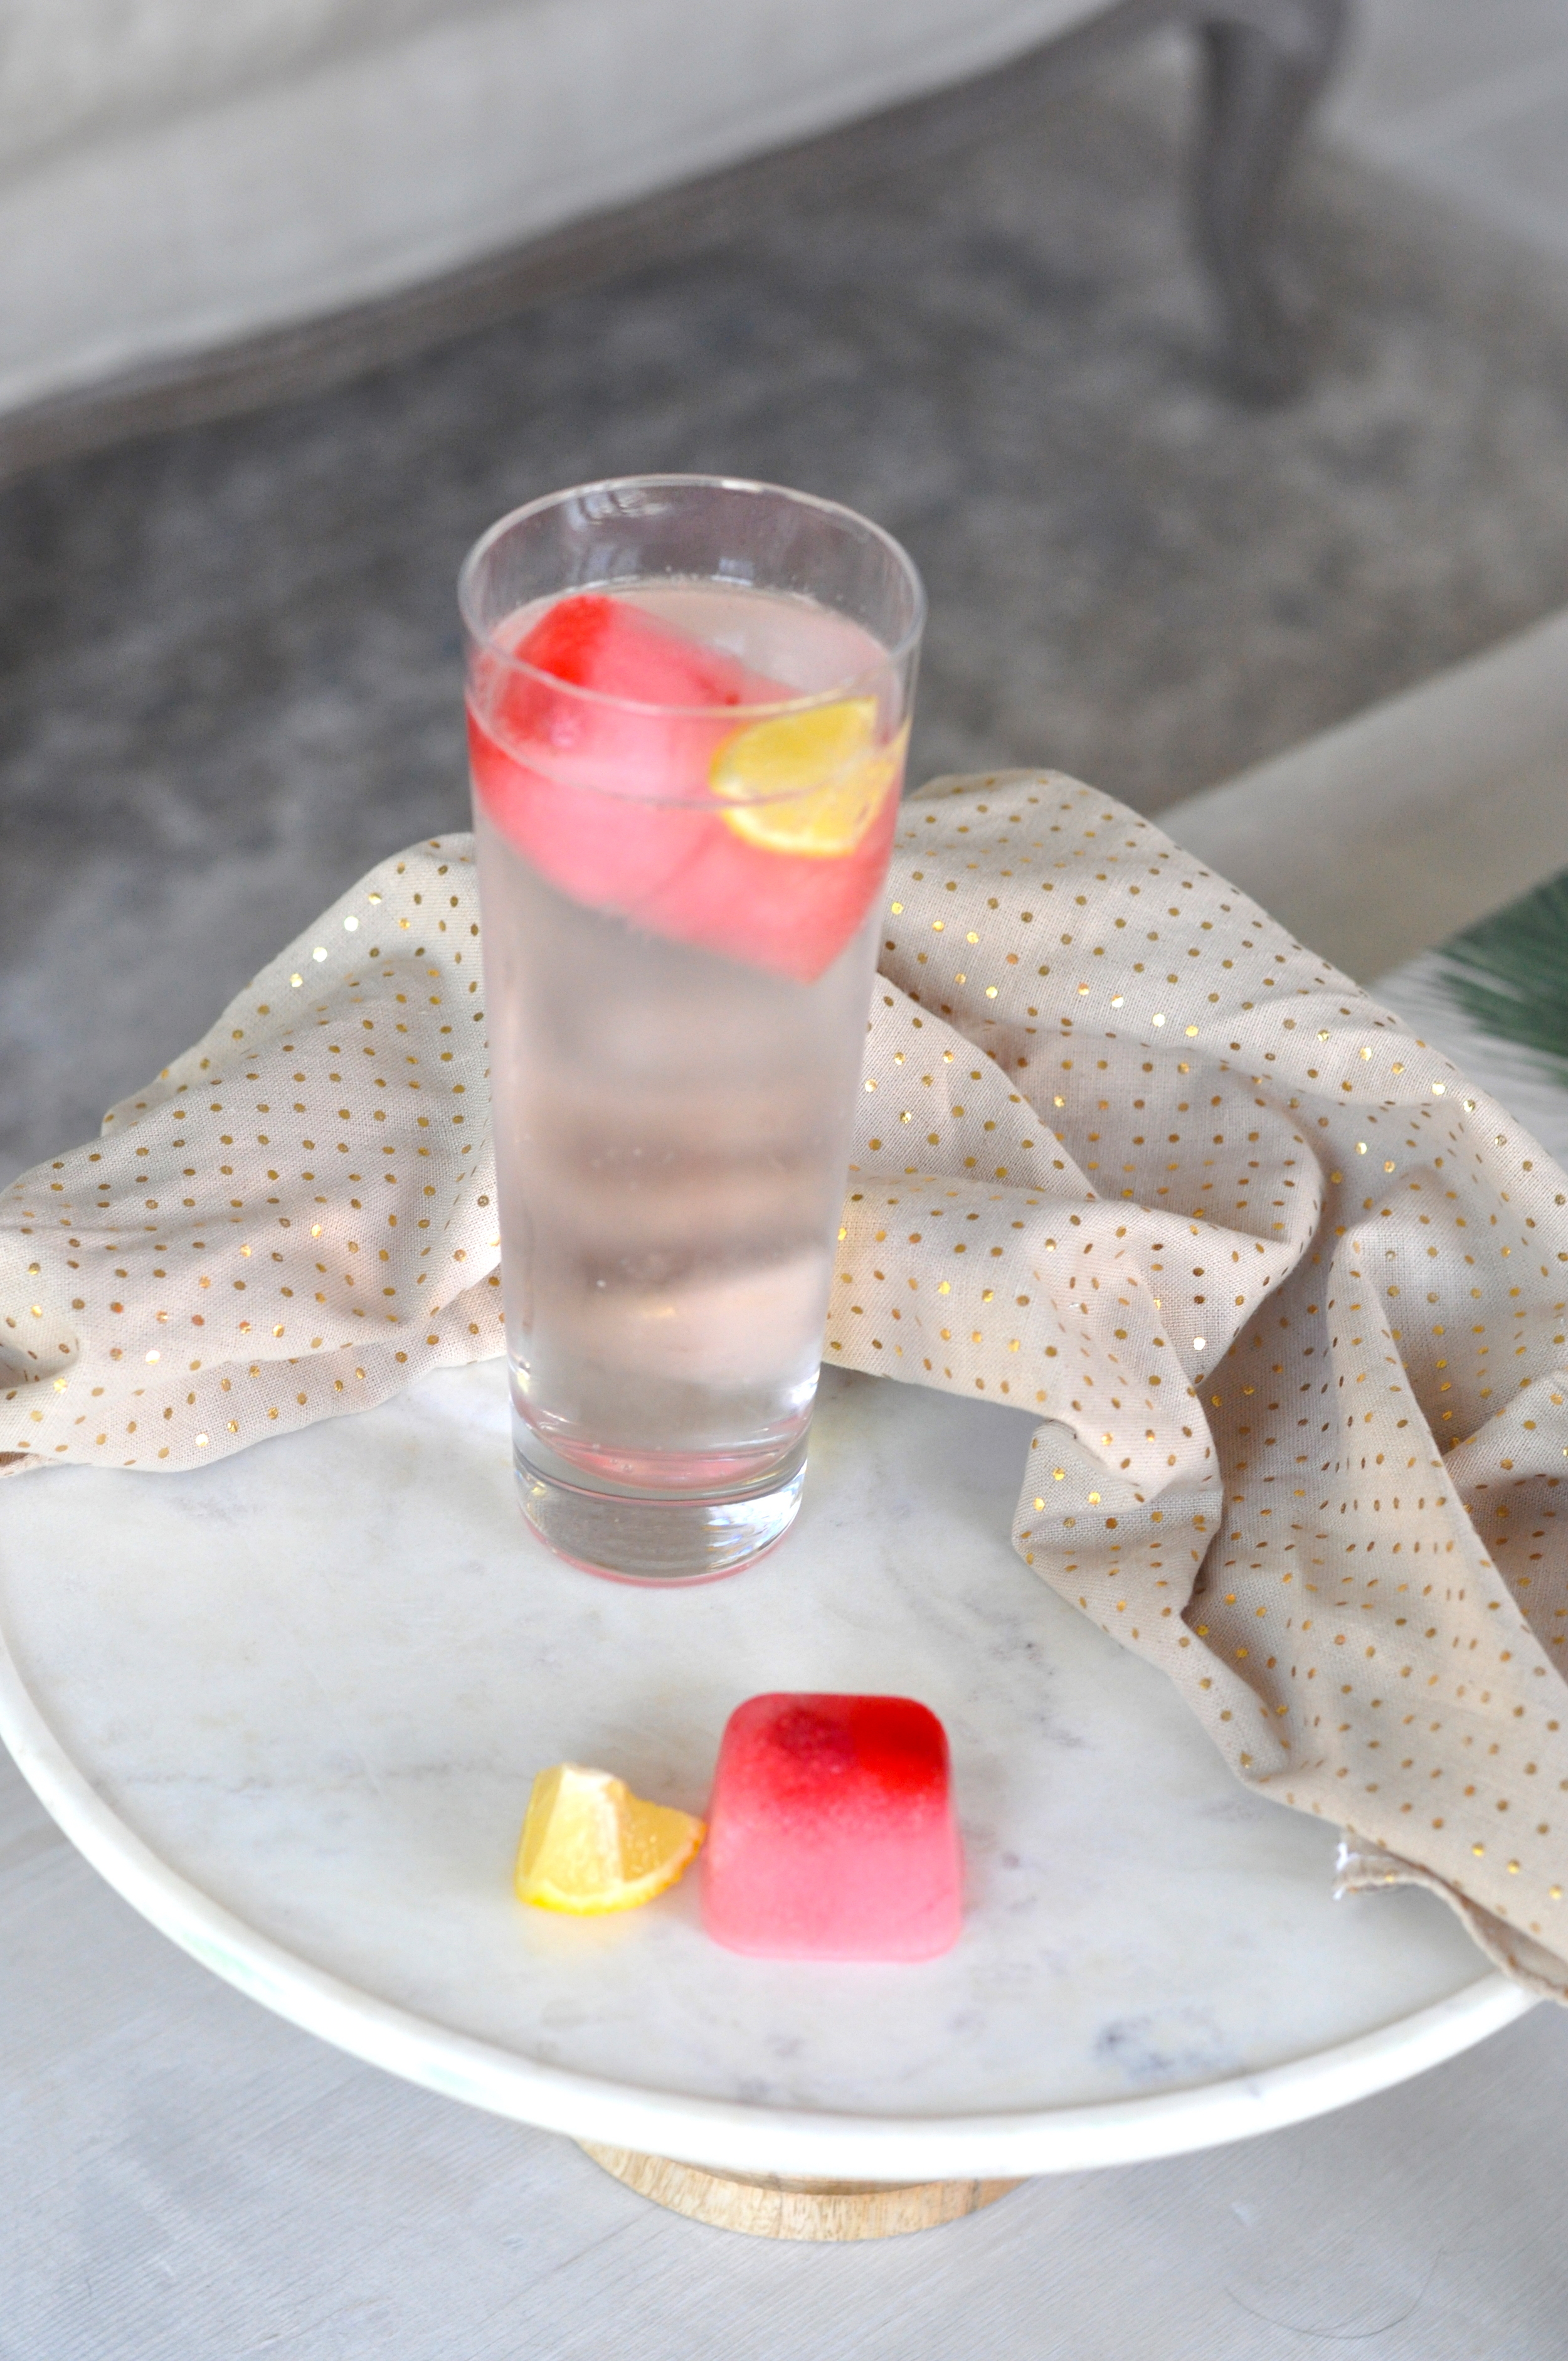 Erin Stanczyk | Lifestyle Design | eat.move.rest. | WATER YOU WAITING FOR? WAKE UP TO A LEMON-RASPBERRY SUNRISE